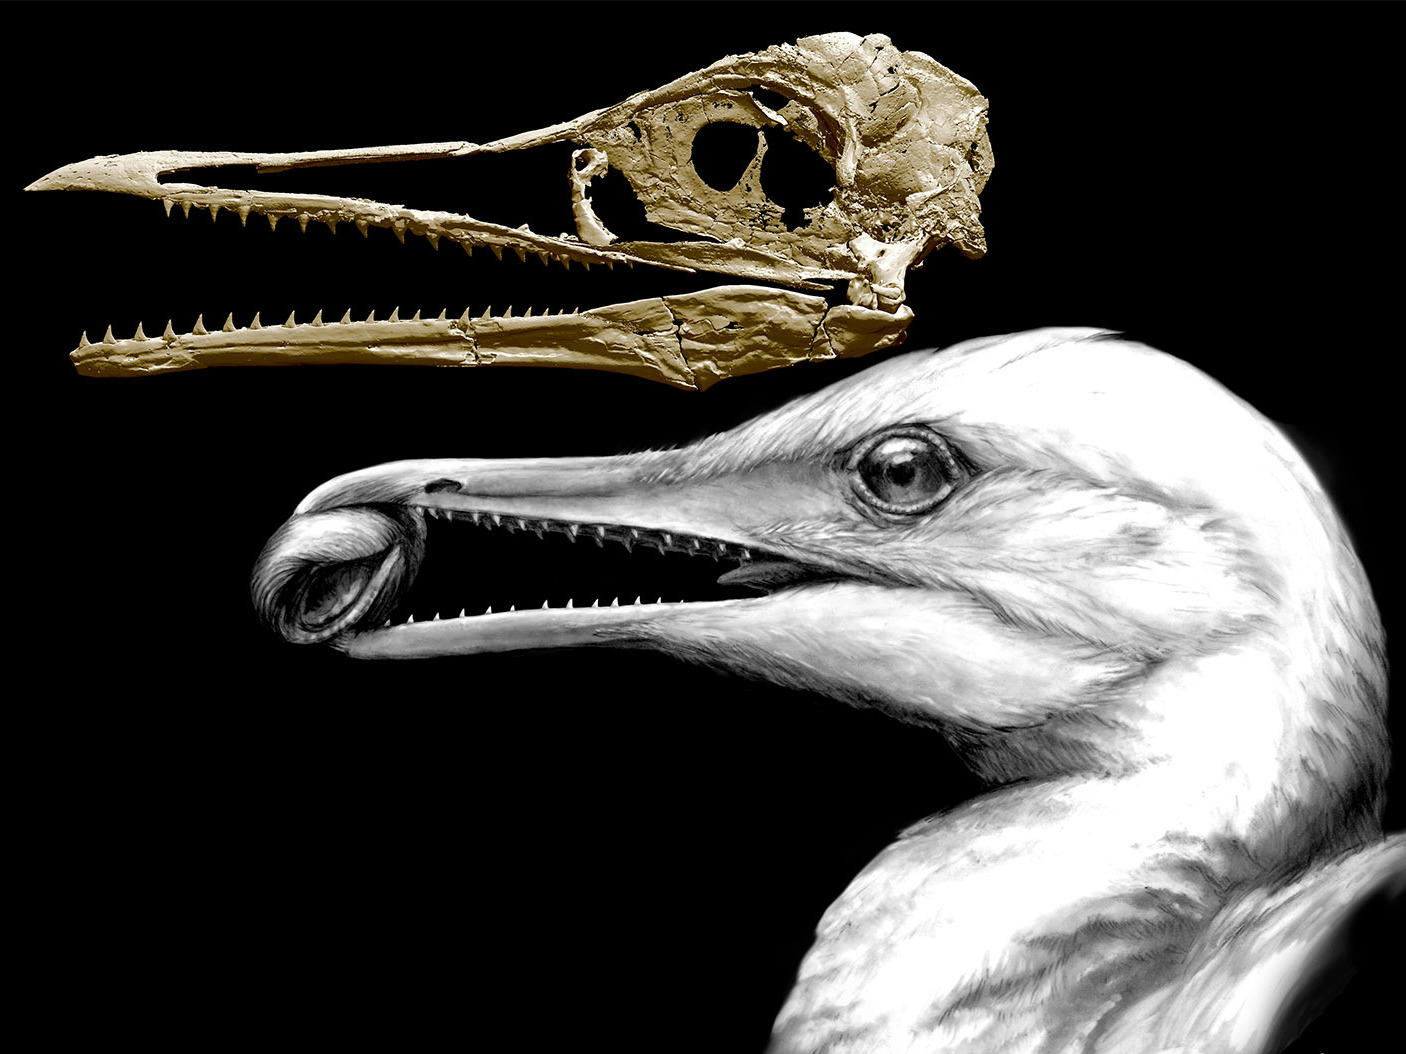 This bird had the first beak, with teeth